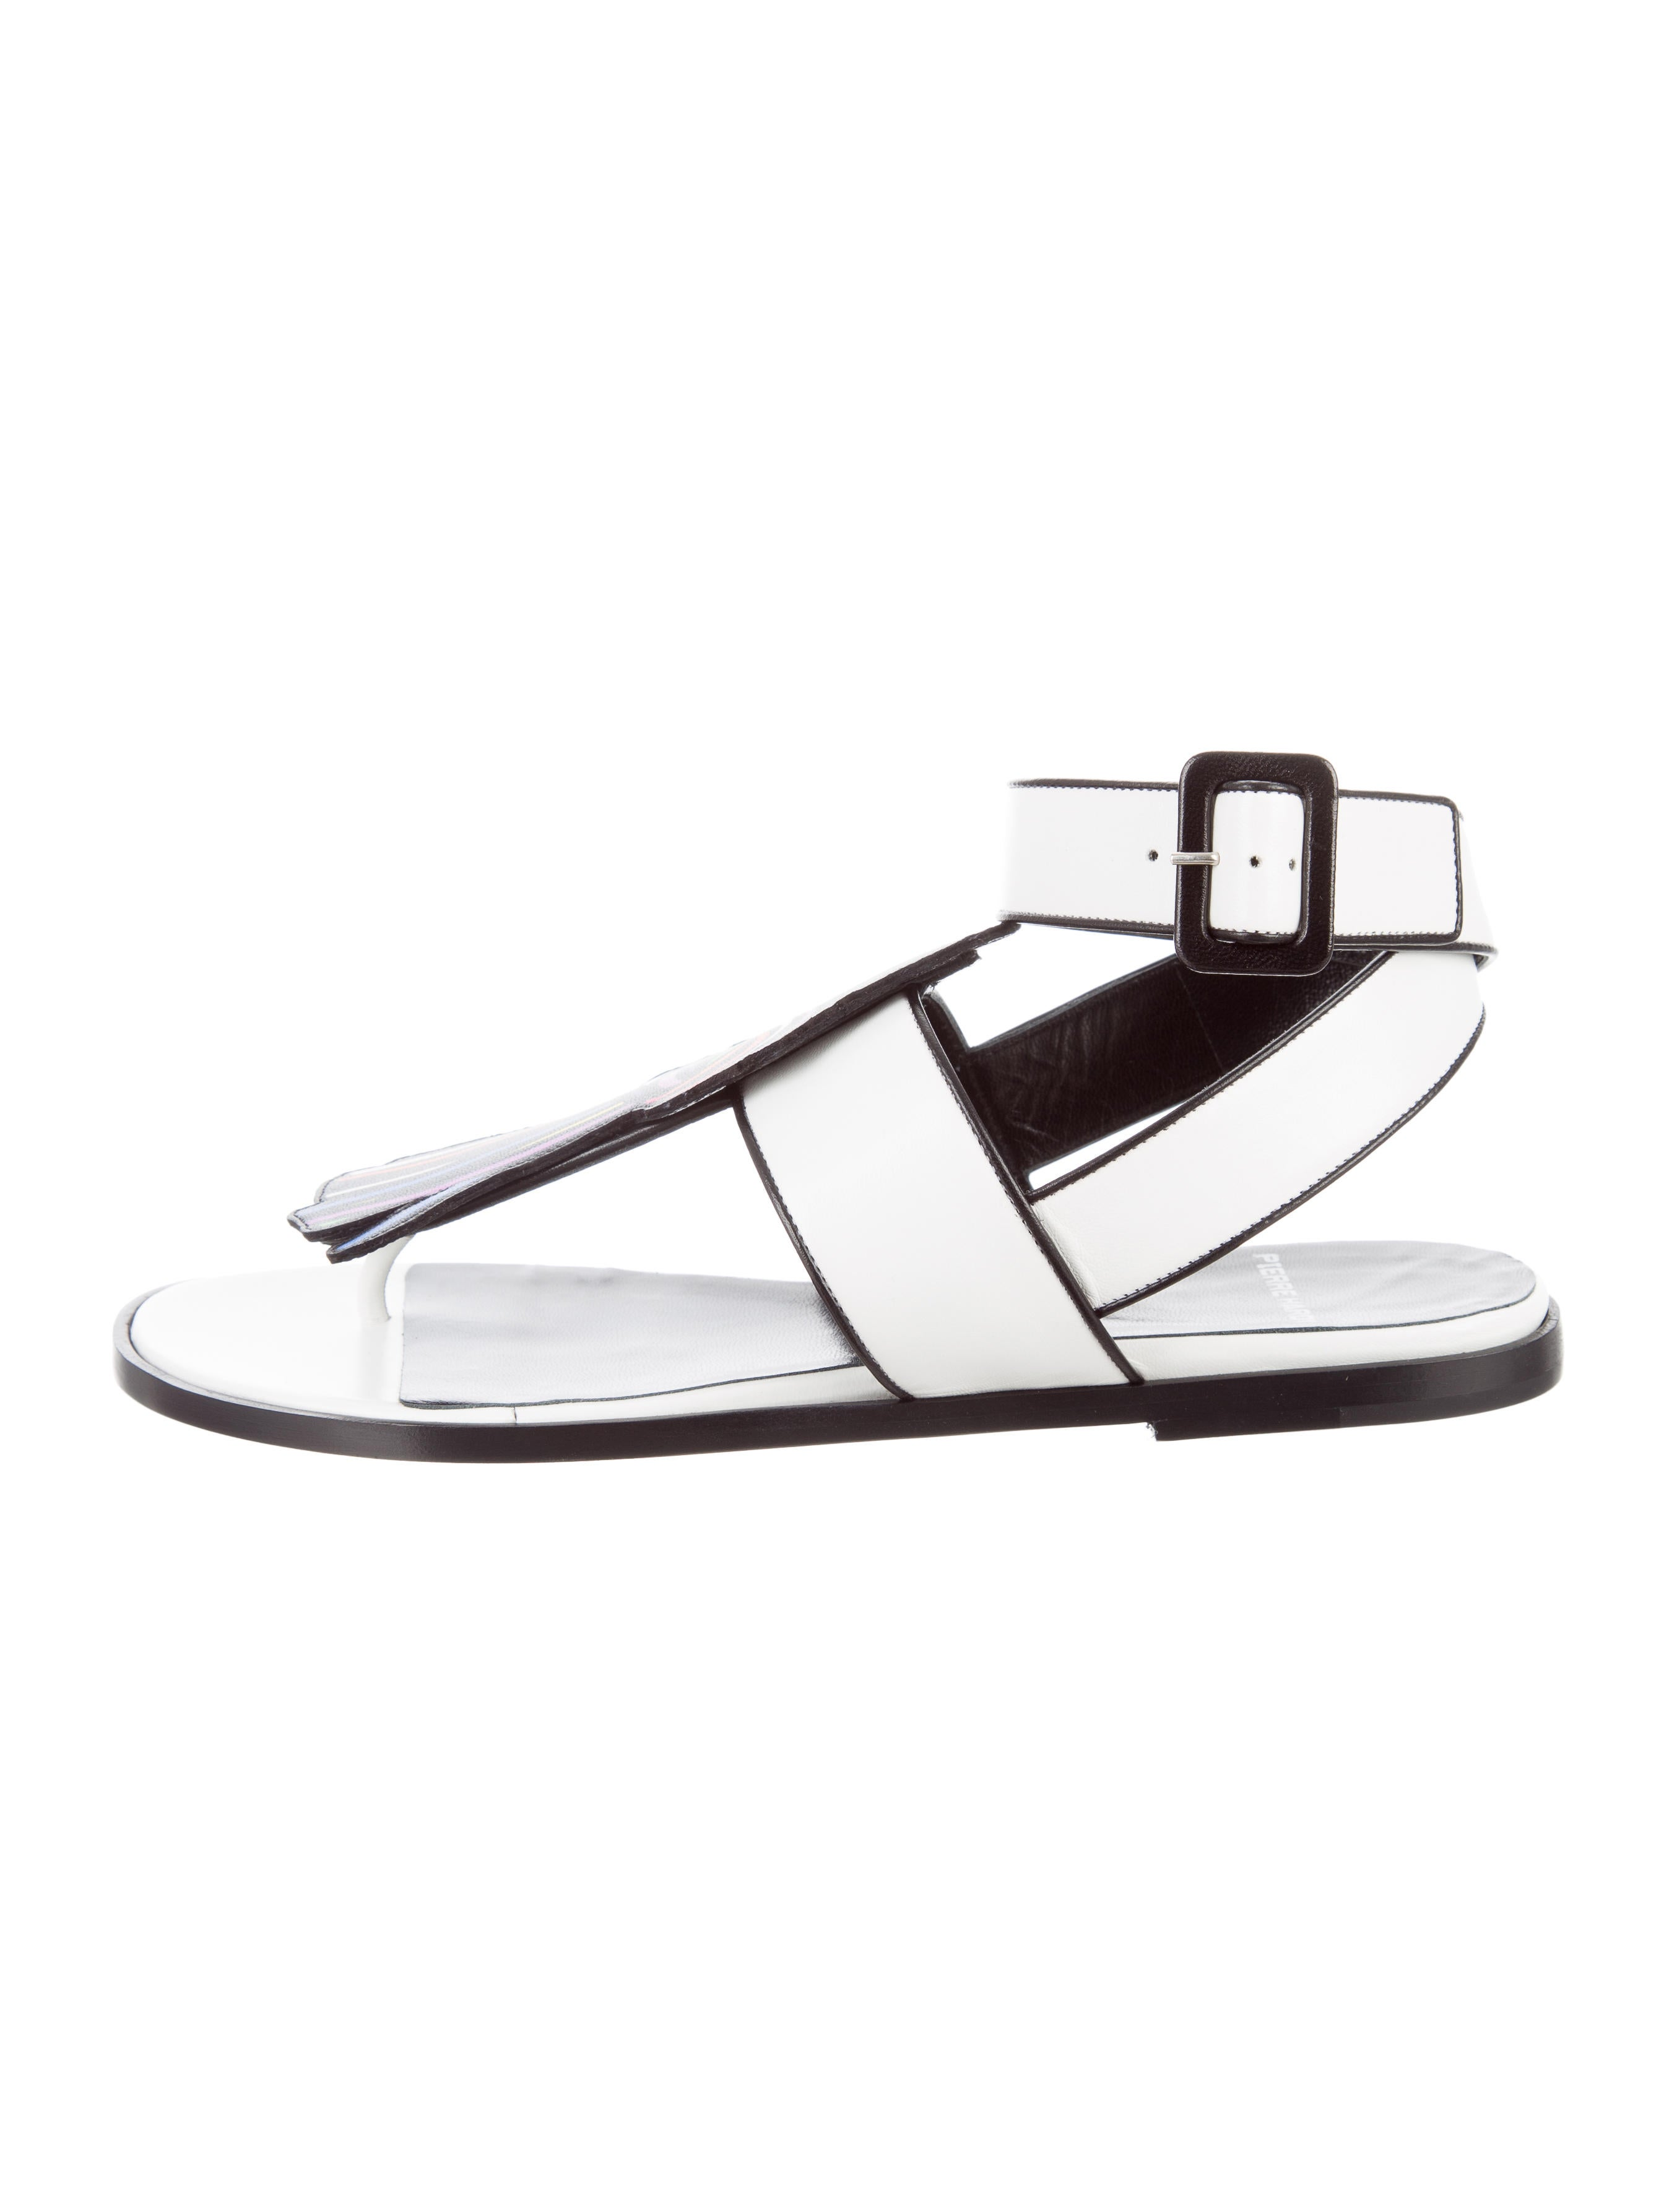 Pierre Hardy Scoubi Pop Sandals w/ Tags discount supply buy cheap footlocker browse sale online buy cheap pictures AYhvQX